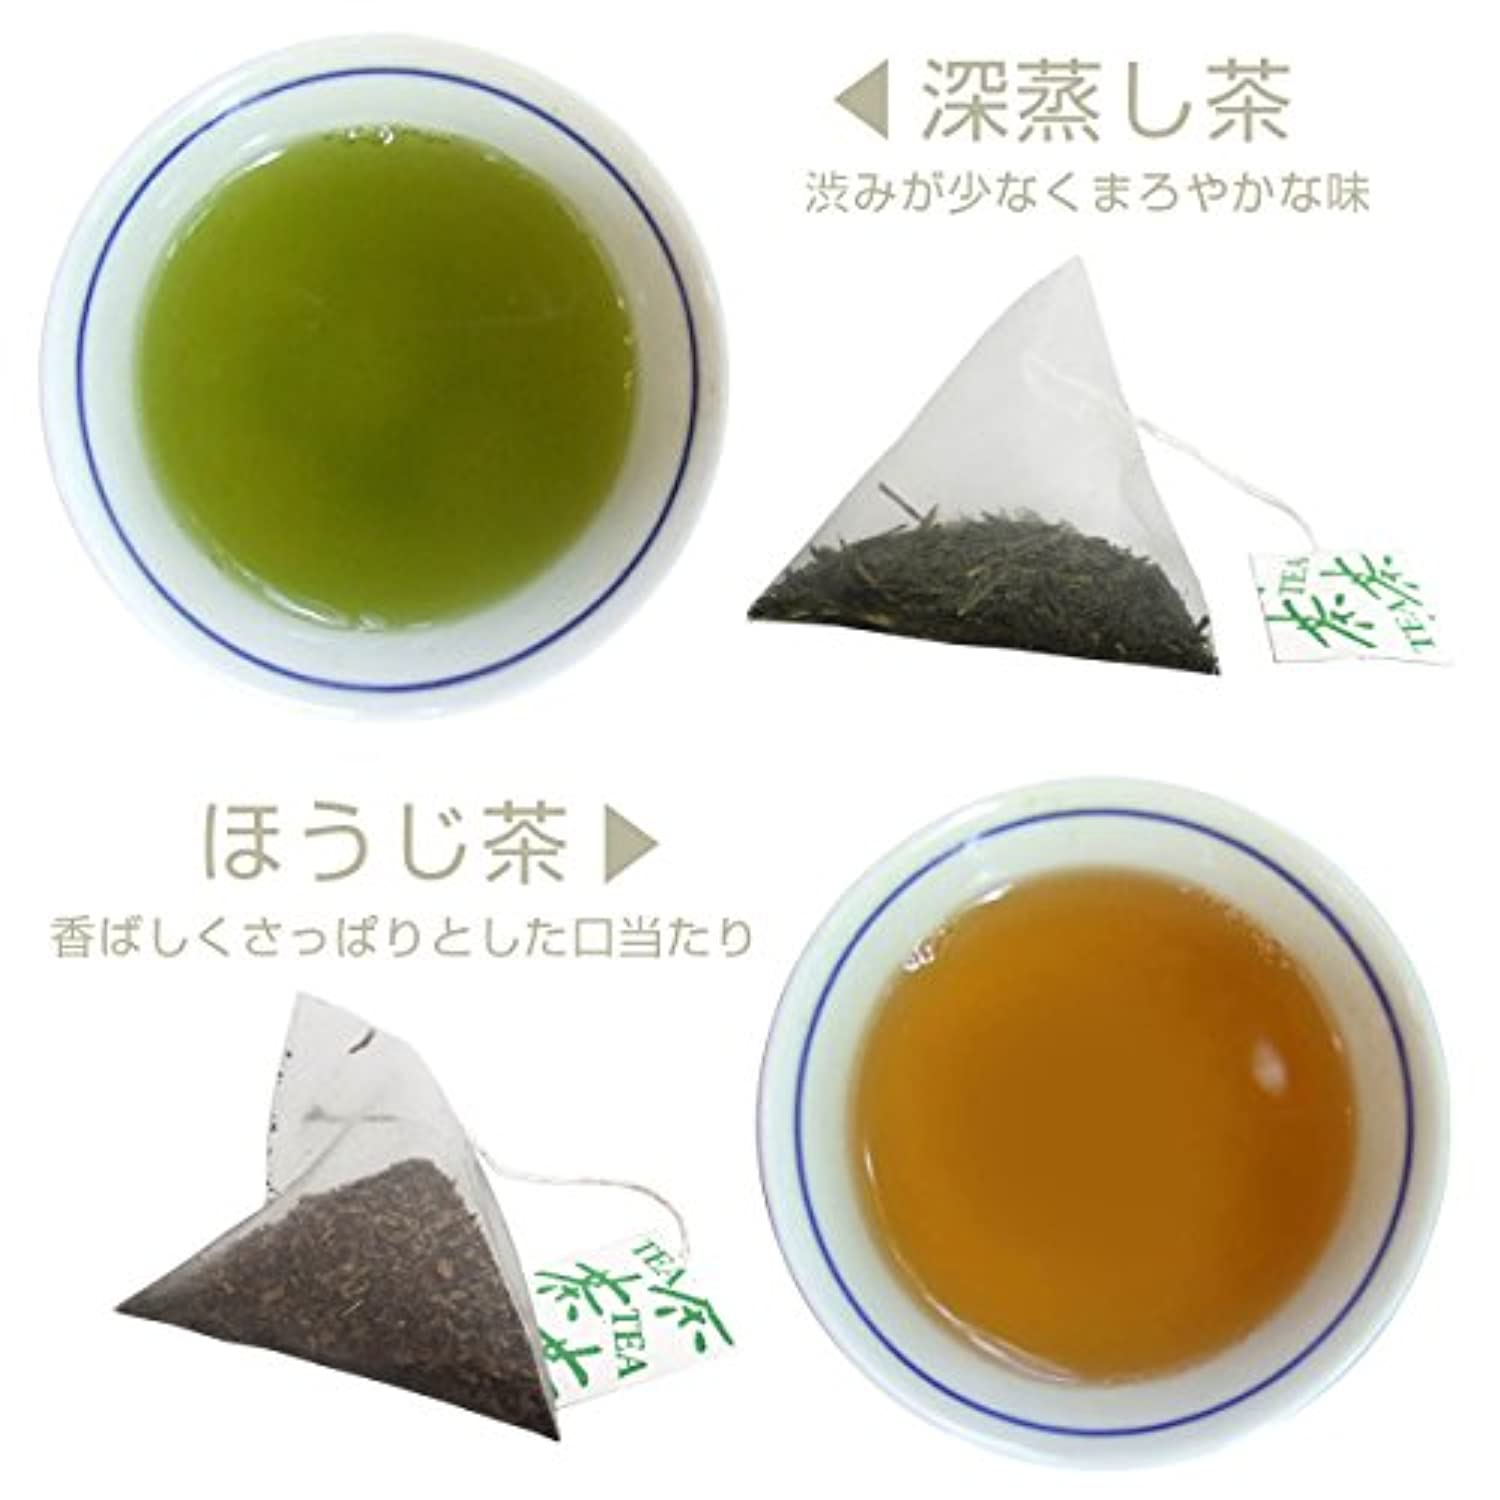 From Japan Deep Steamed Green Tea /& Roasted Tea with Cat Gift